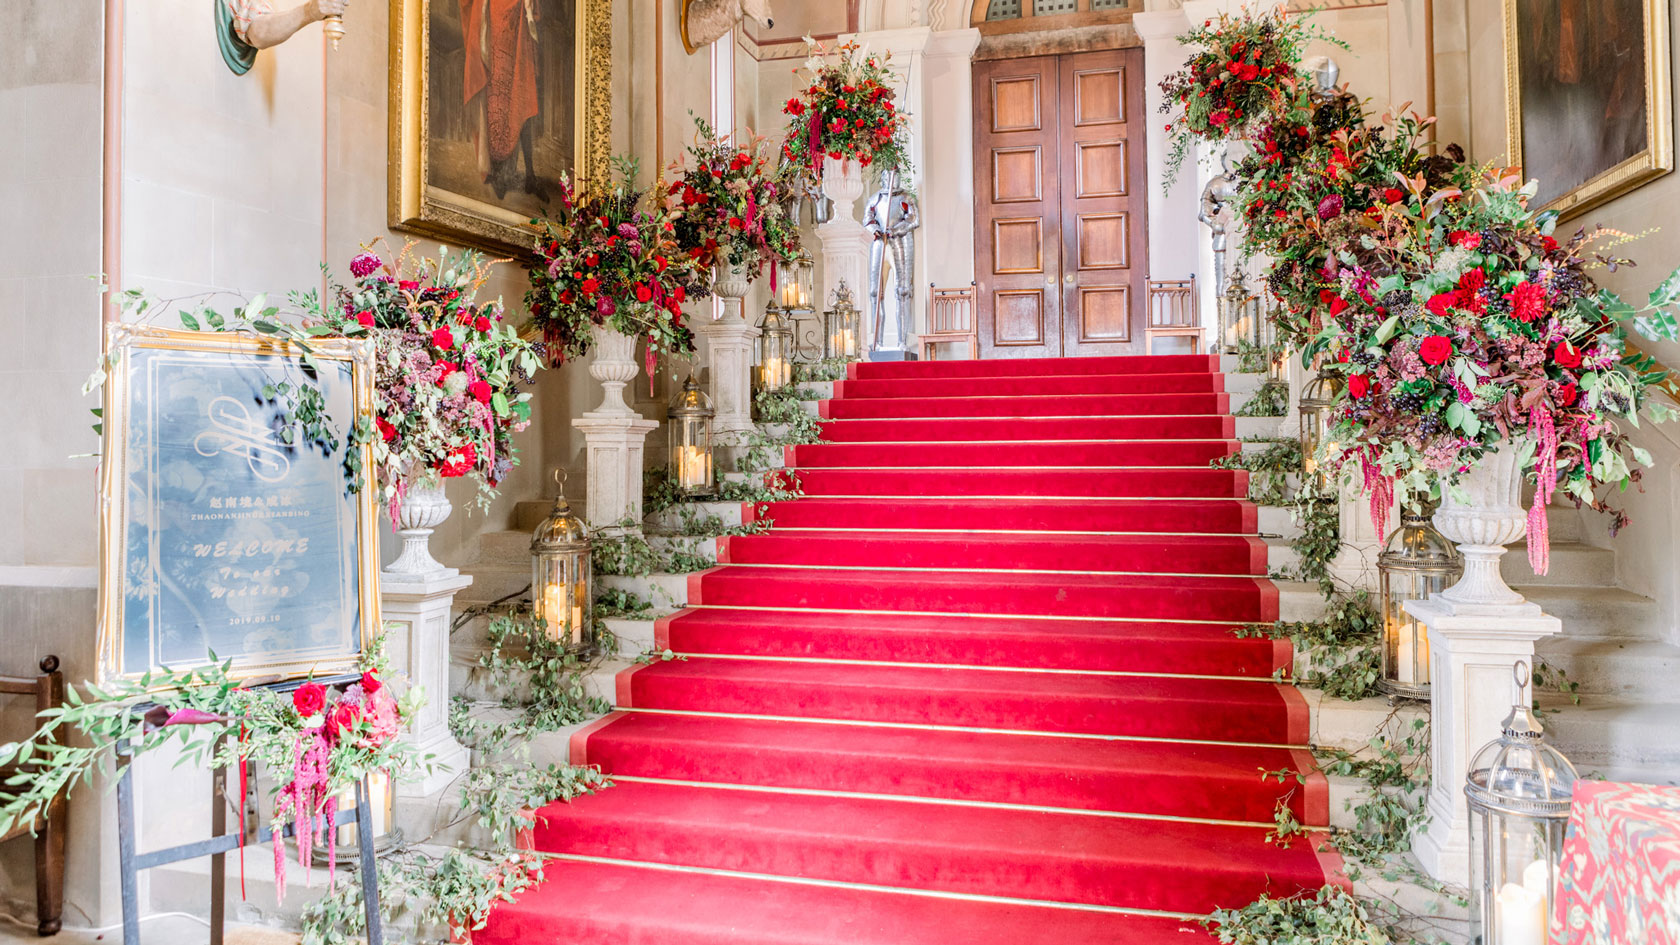 a castle staircase with an avenue or urns and plynths filled with flowers on each step